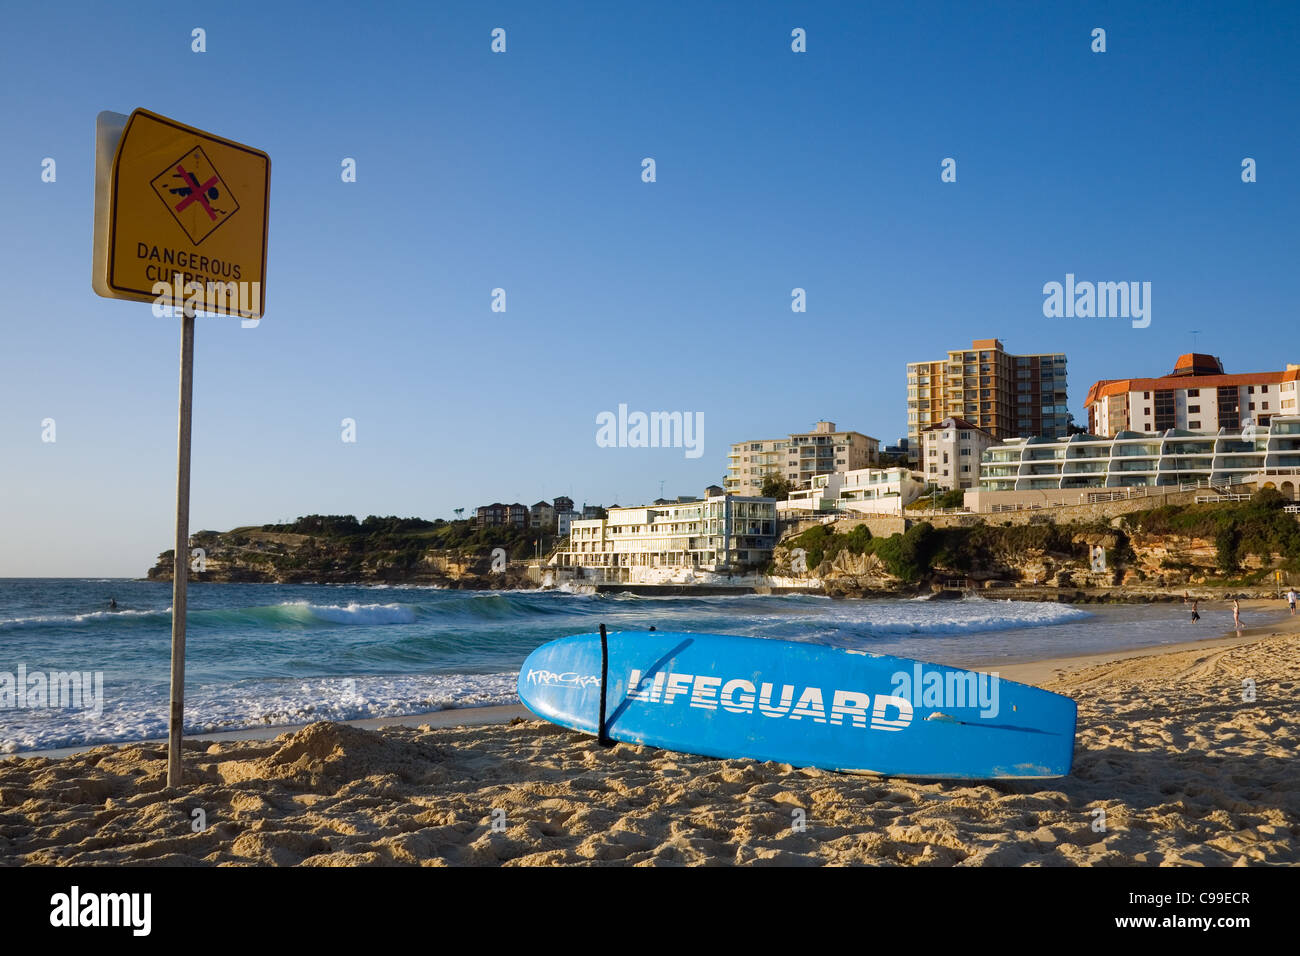 Lifeguard rescue board on the sands of Bondi Beach. Sydney, New South Wales, Australia - Stock Image